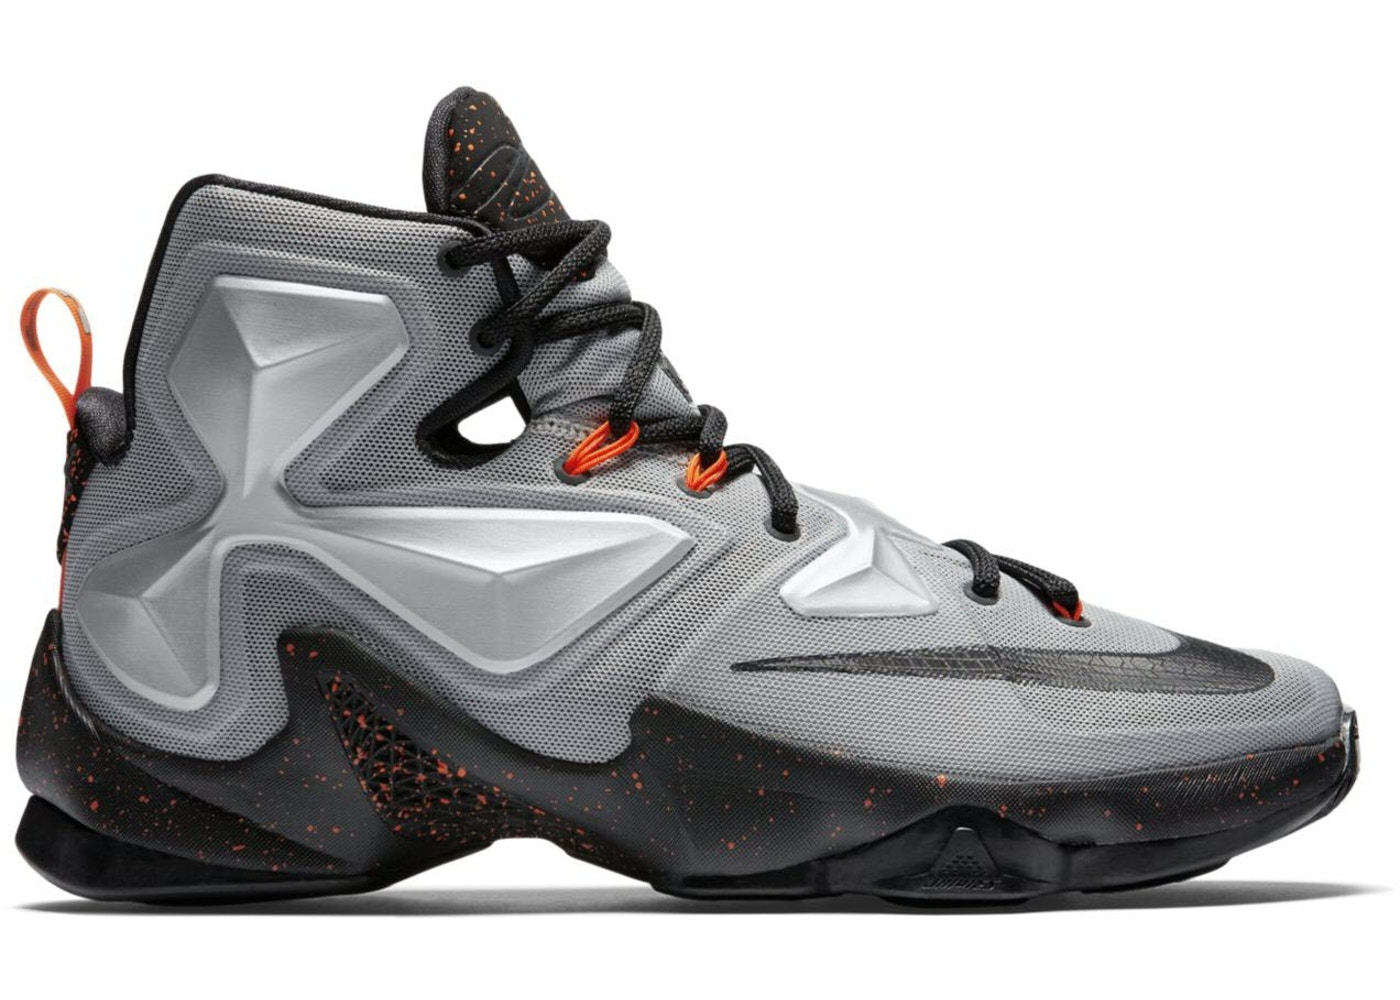 outlet store 809a5 1679e Buy Nike LeBron 13 Shoes & Deadstock Sneakers